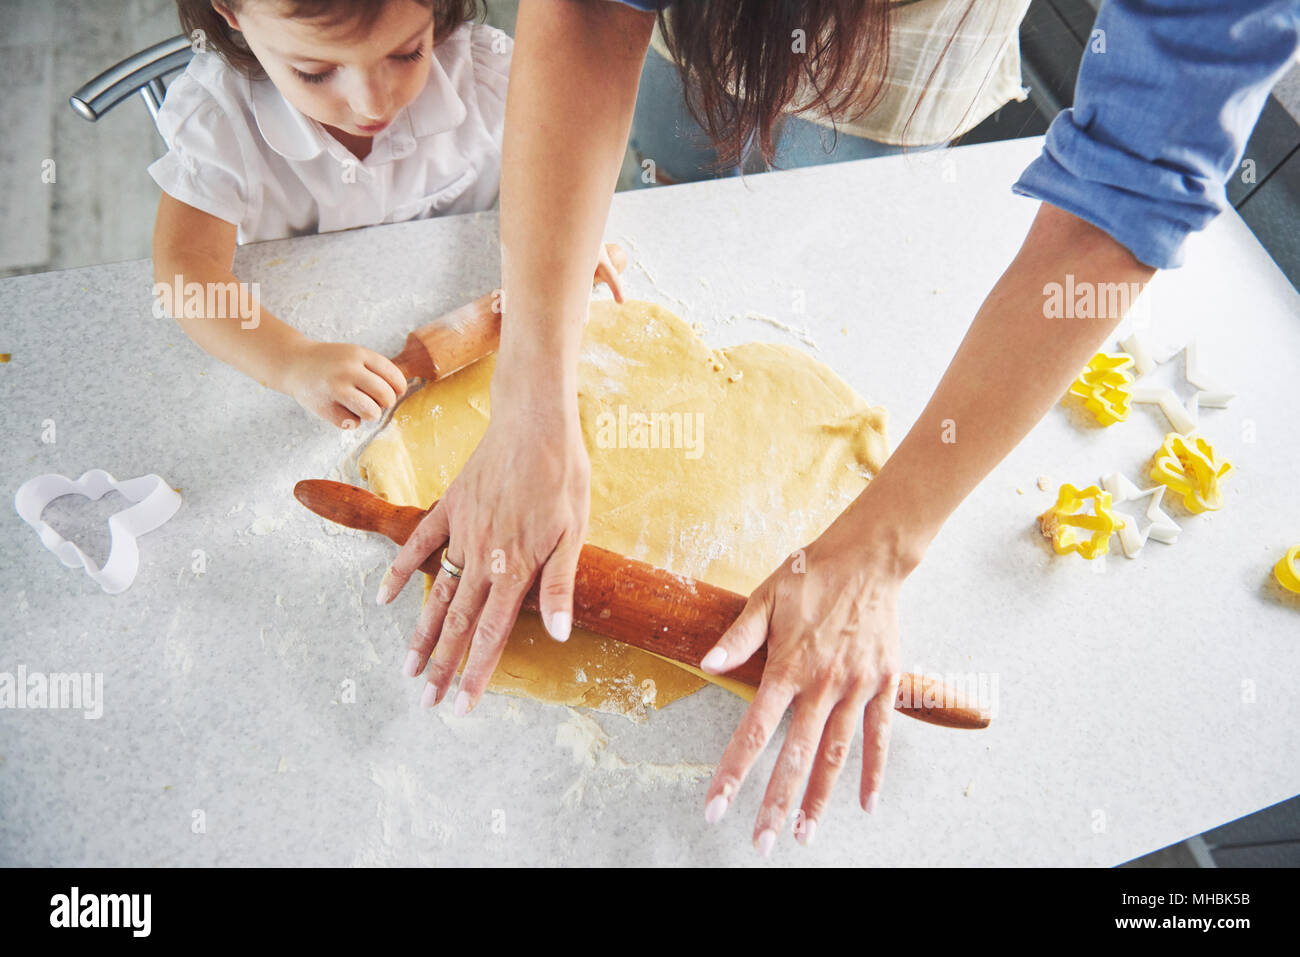 Happy family preparation holiday food concept. Family cooking Christmas cookies. Hands of mother and daughter preparing the dough on the table. Happy family in making cookies at home - Stock Image